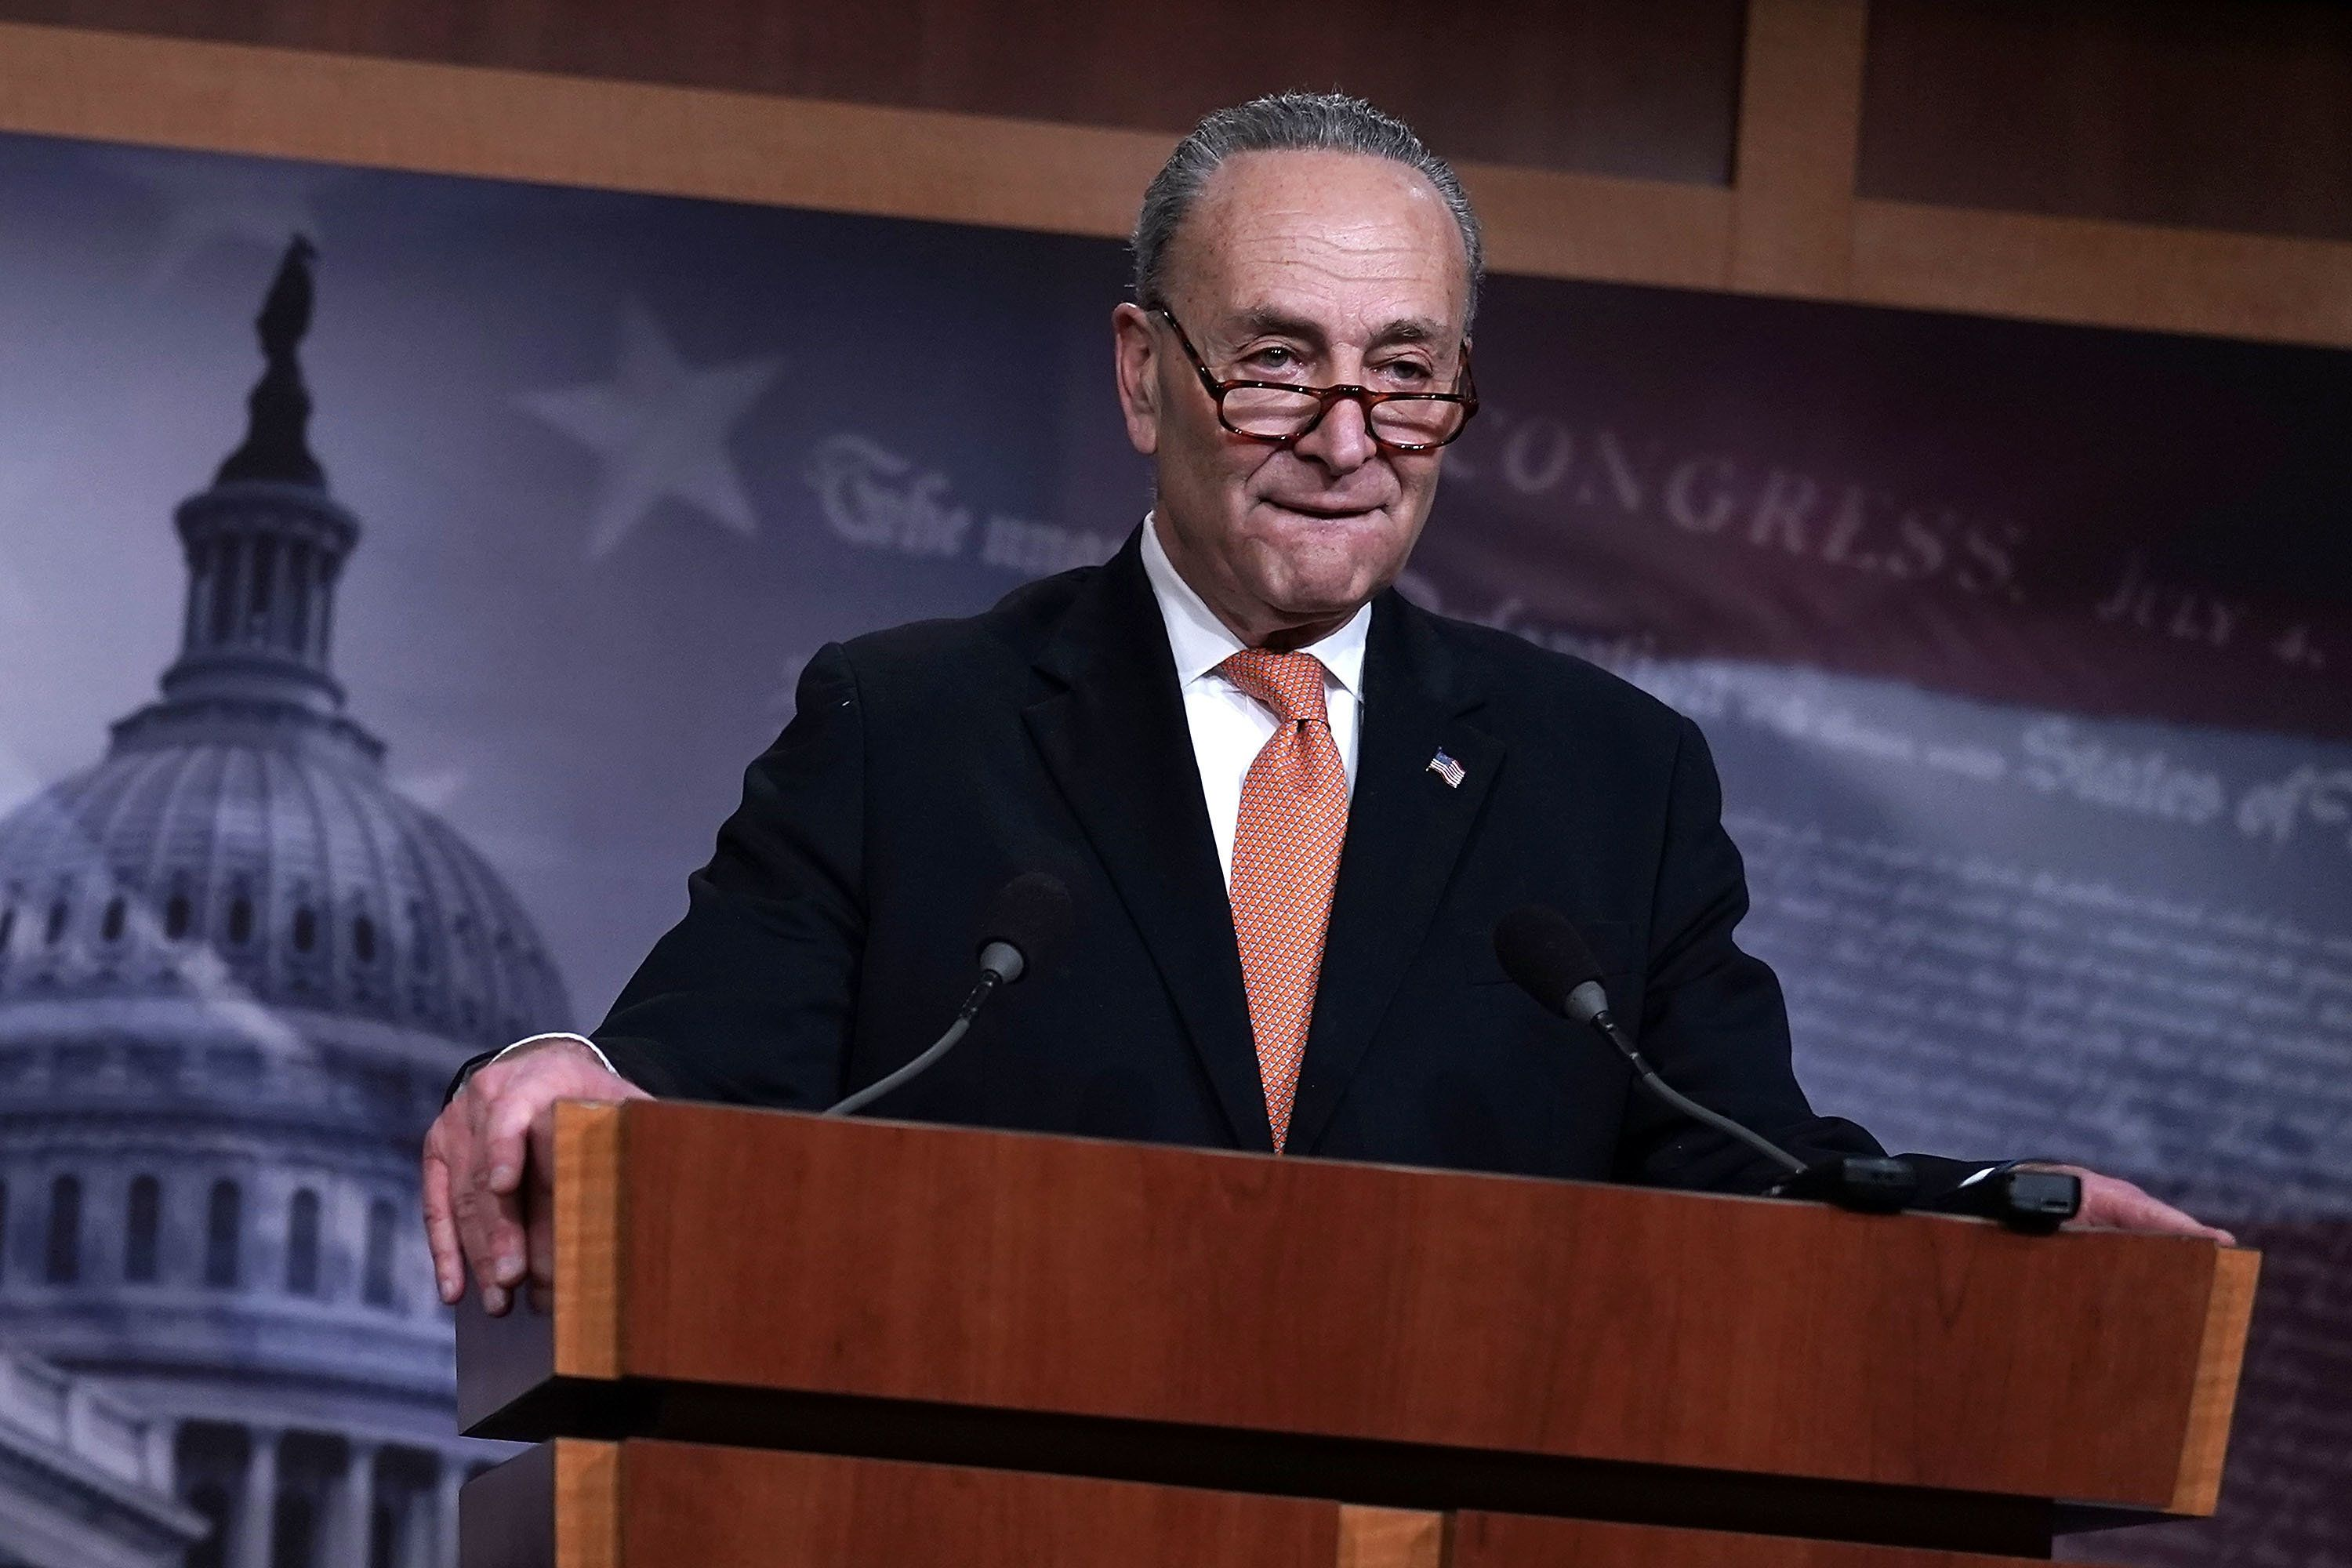 Senate Minority Leader Chuck Schumer (D-N.Y.) said in a speech that he had expressed openness to funding a border wall d